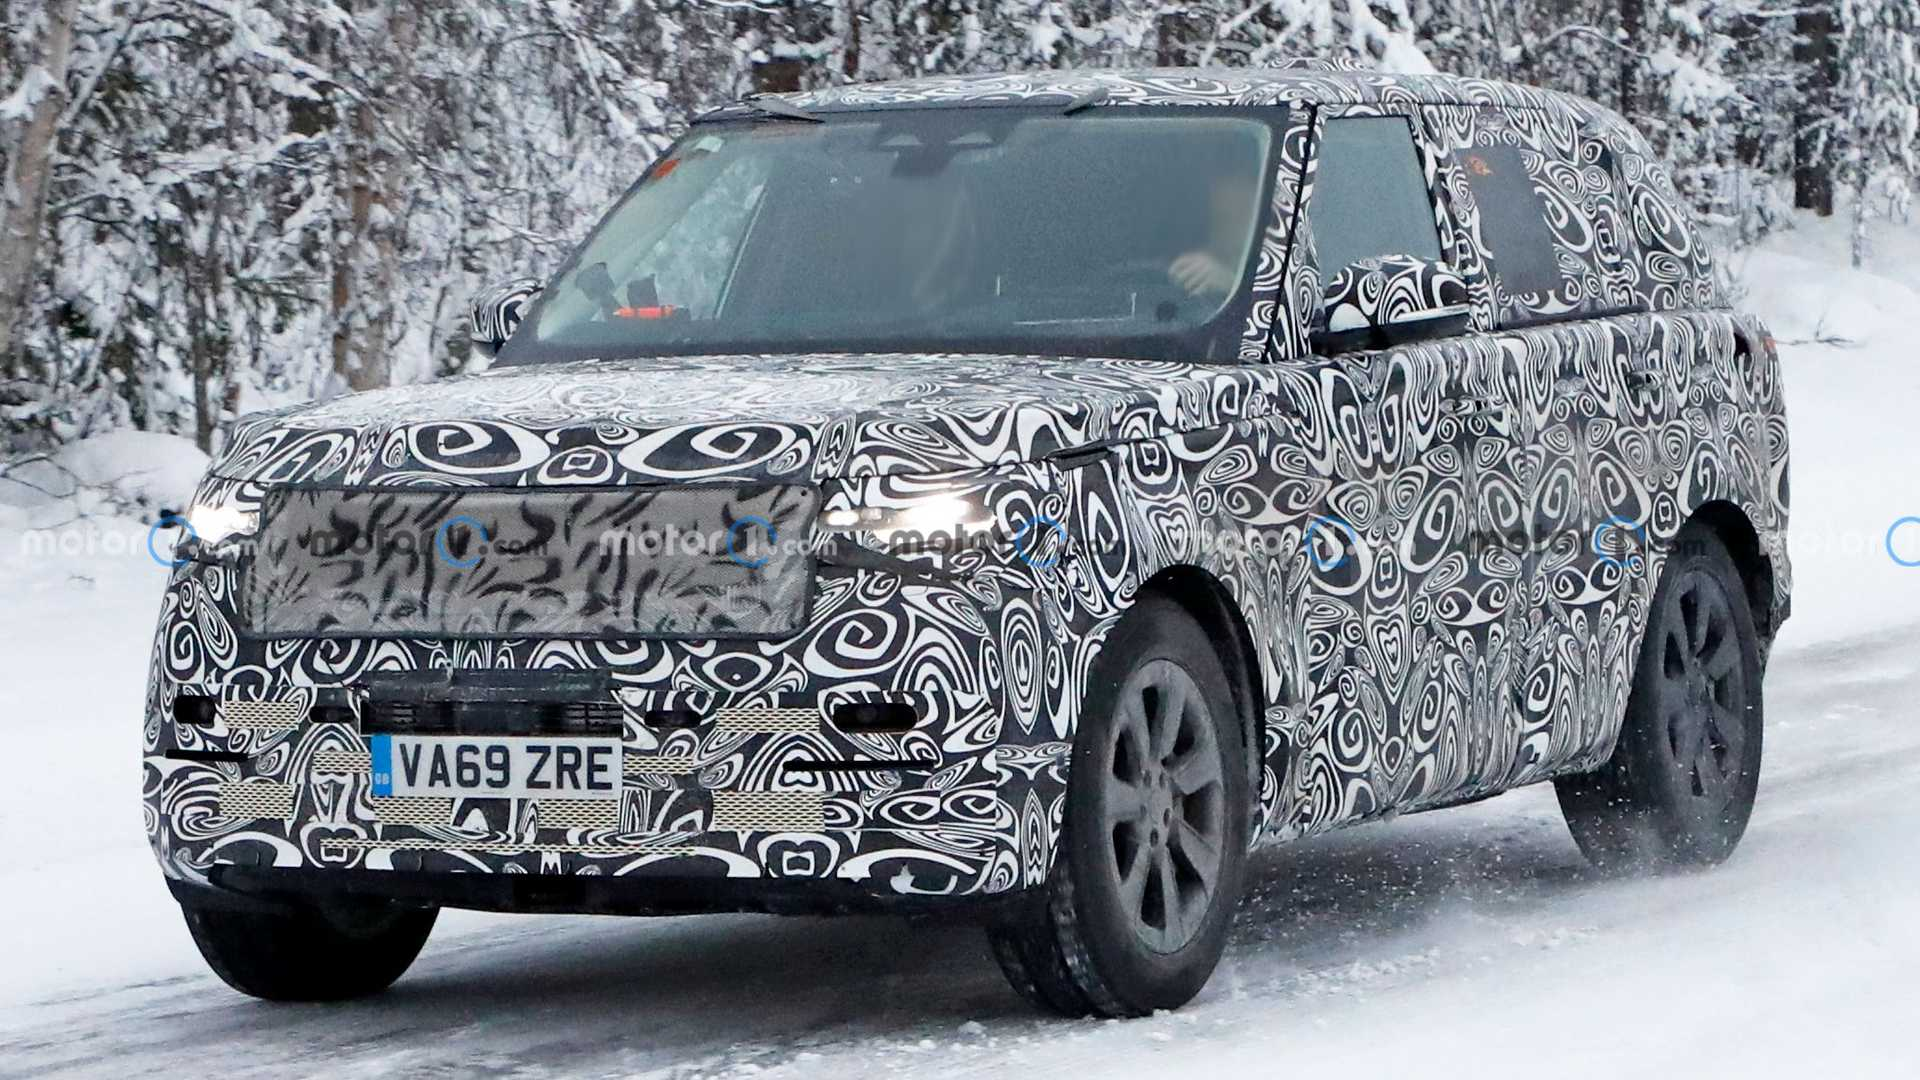 2022 Range Rover Spied Testing In Sweden's Winter Wonderland